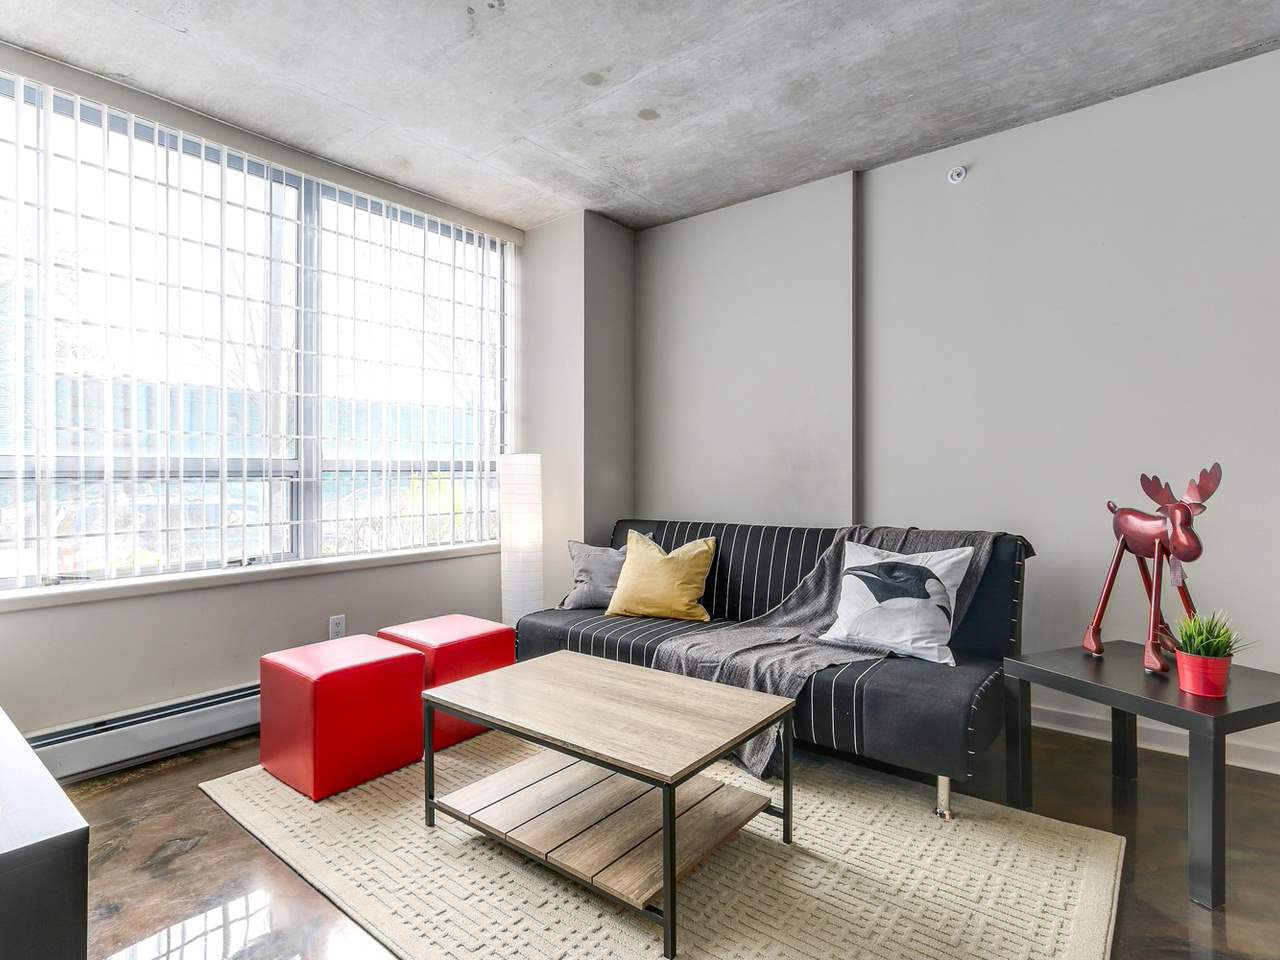 Condo Apartment at 905 STATION STREET, Vancouver East, British Columbia. Image 1